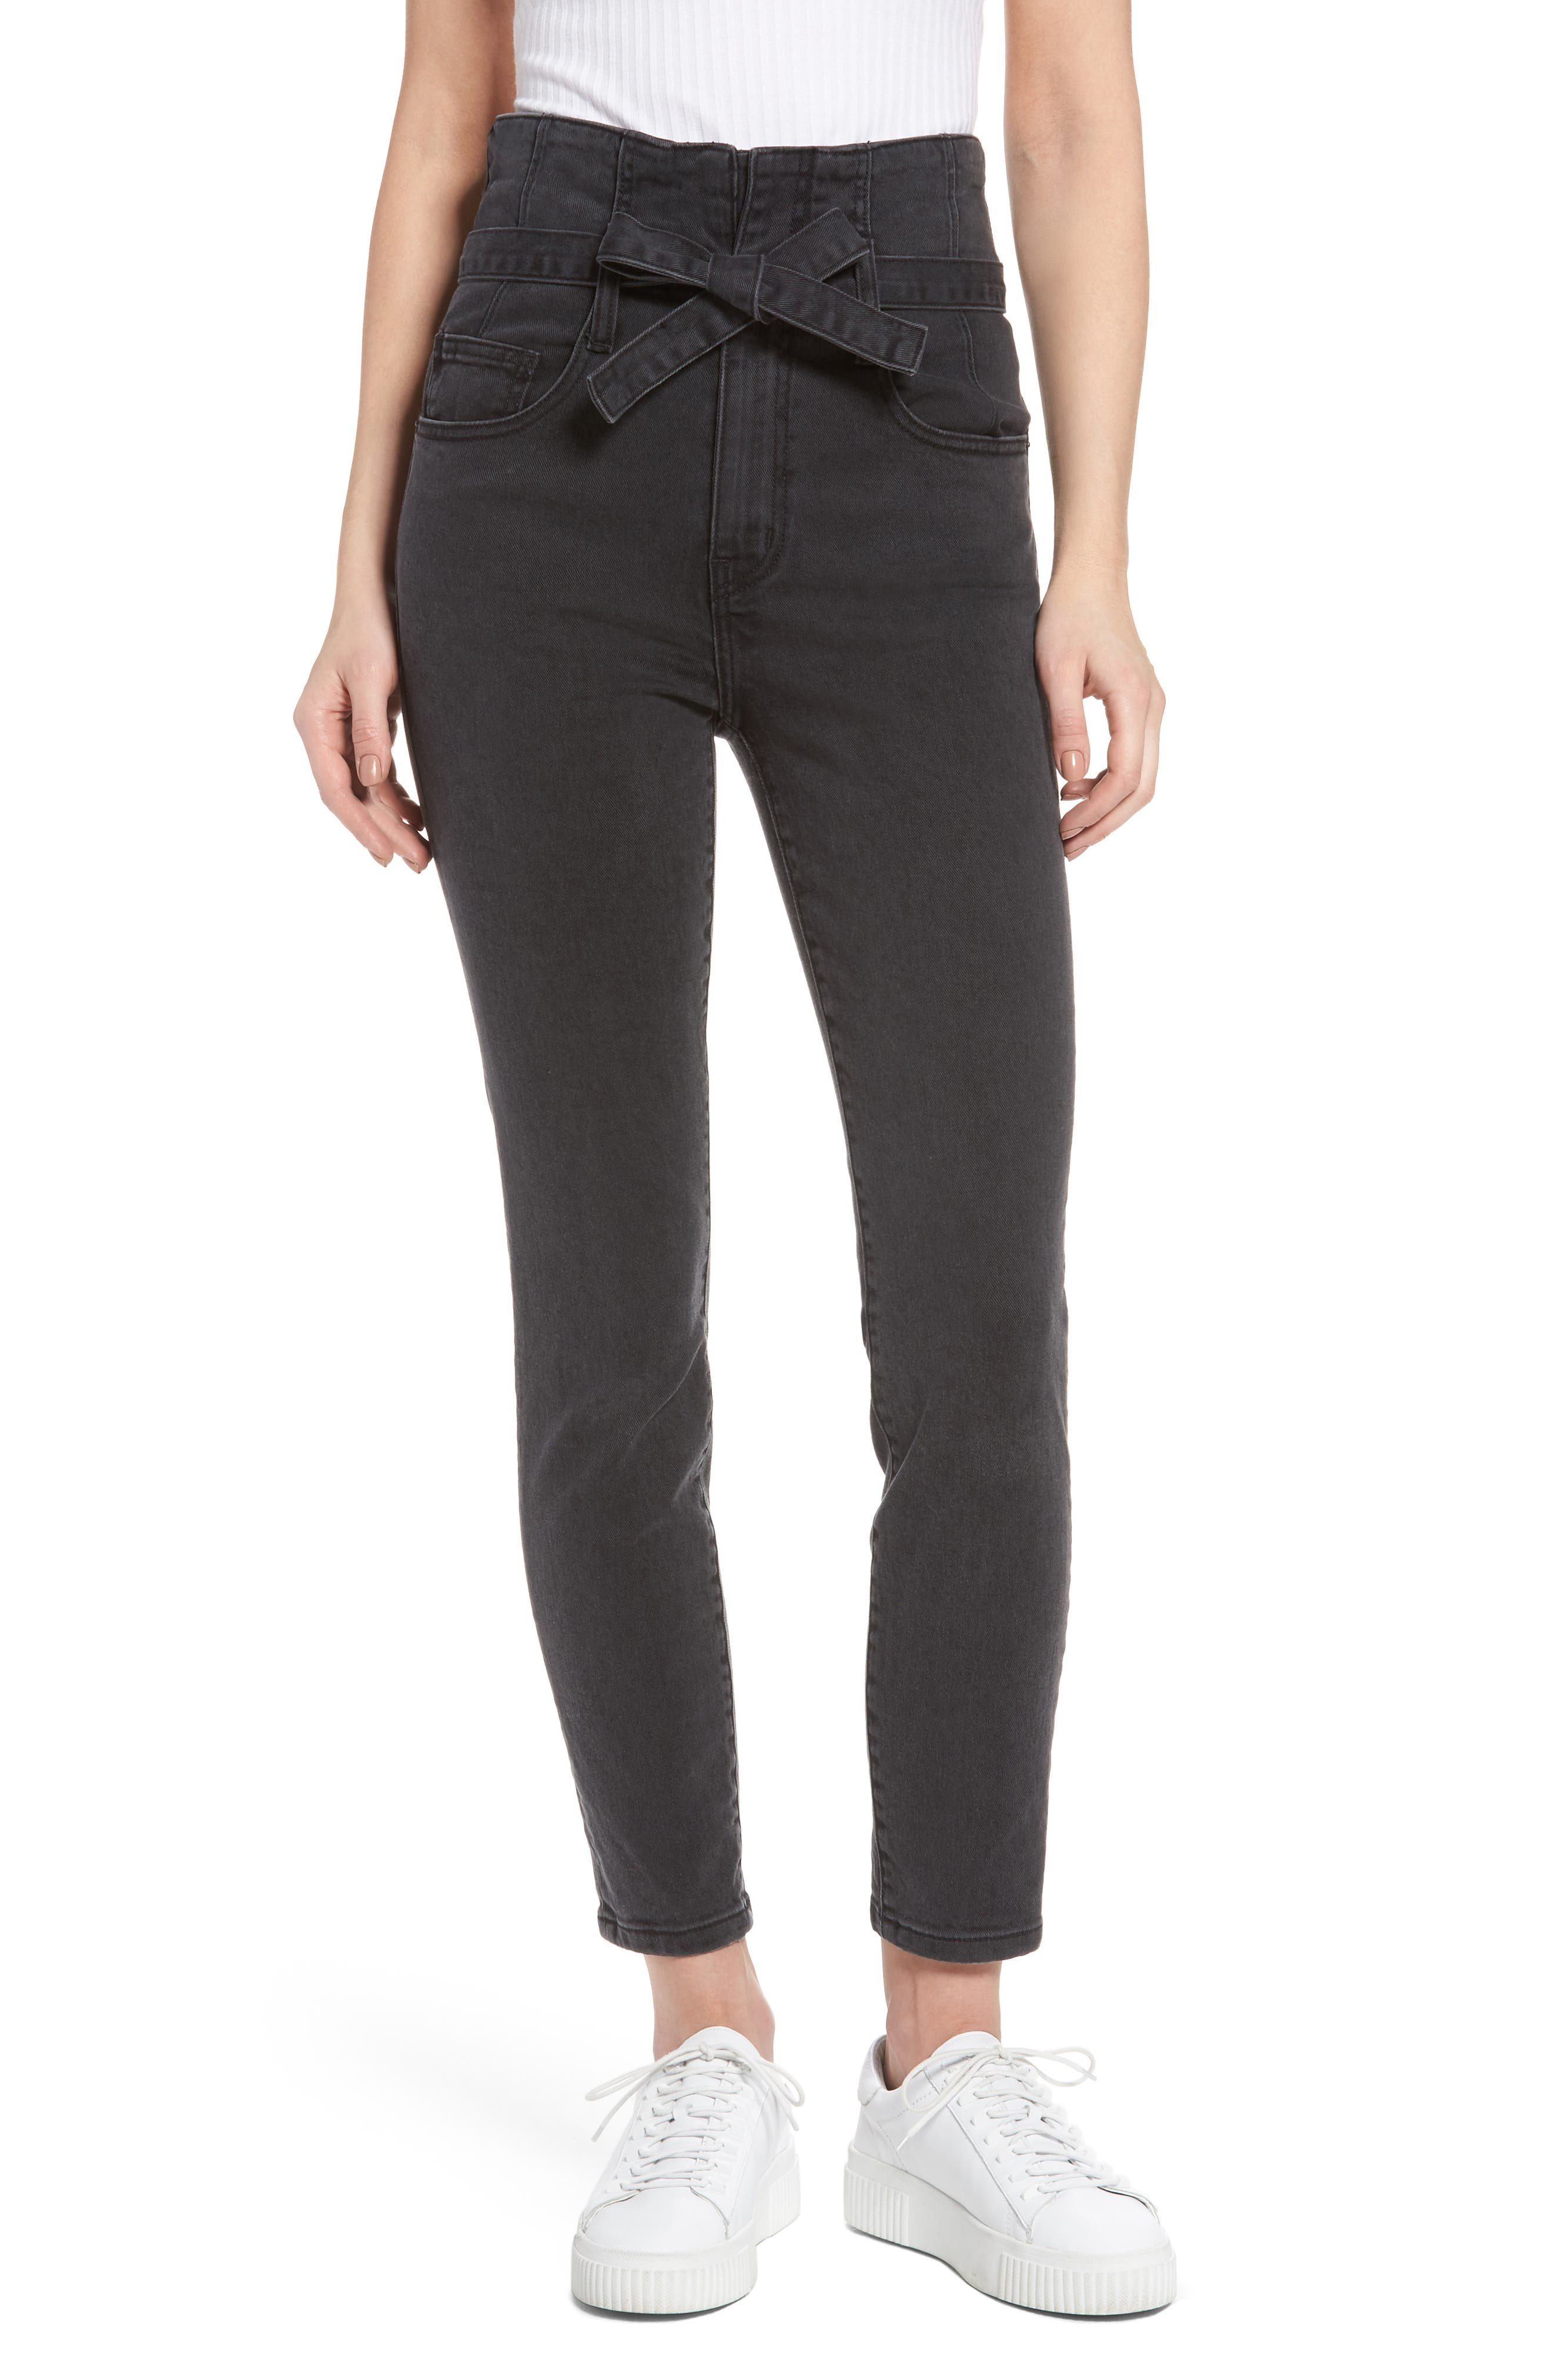 Alternate Image 1 Selected - Current/Elliott Corset Stiletto Ankle Skinny Jeans (Indiana)